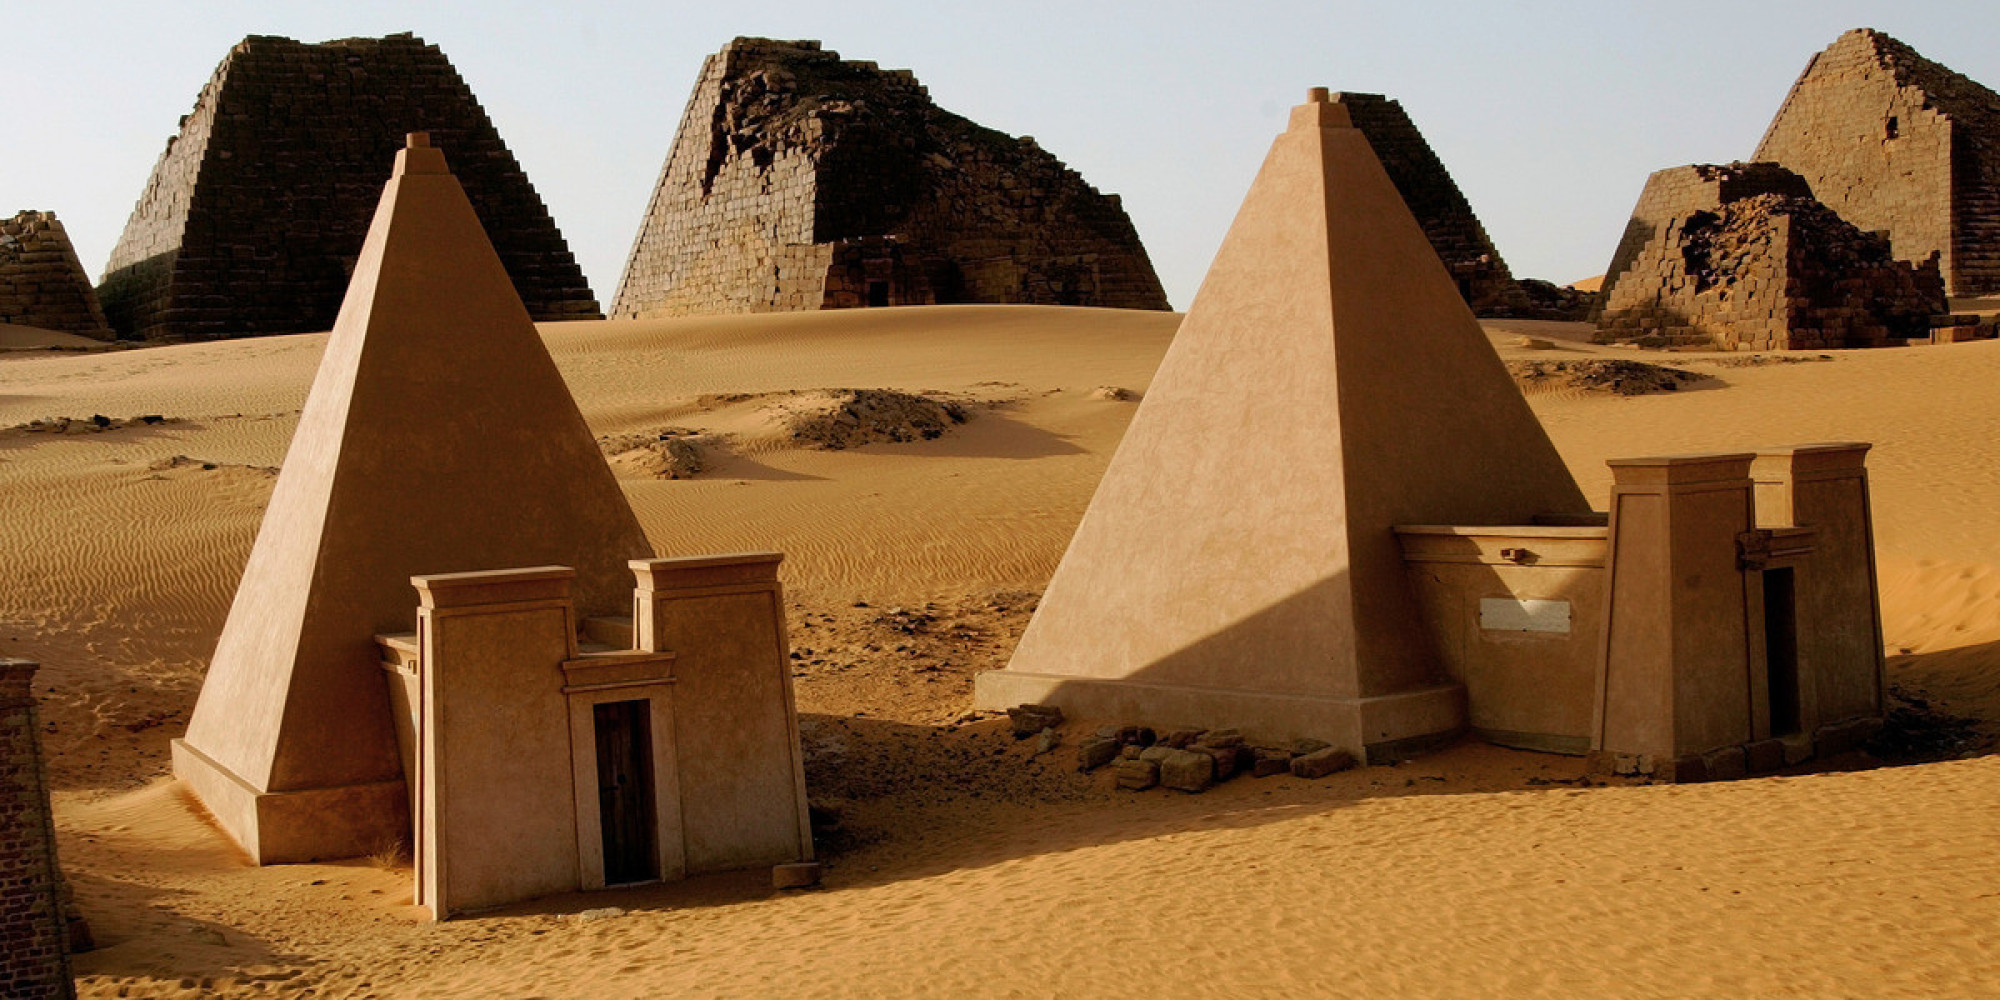 Sudan S Meroe Pyramids Are Just As Spectacular As The Ones